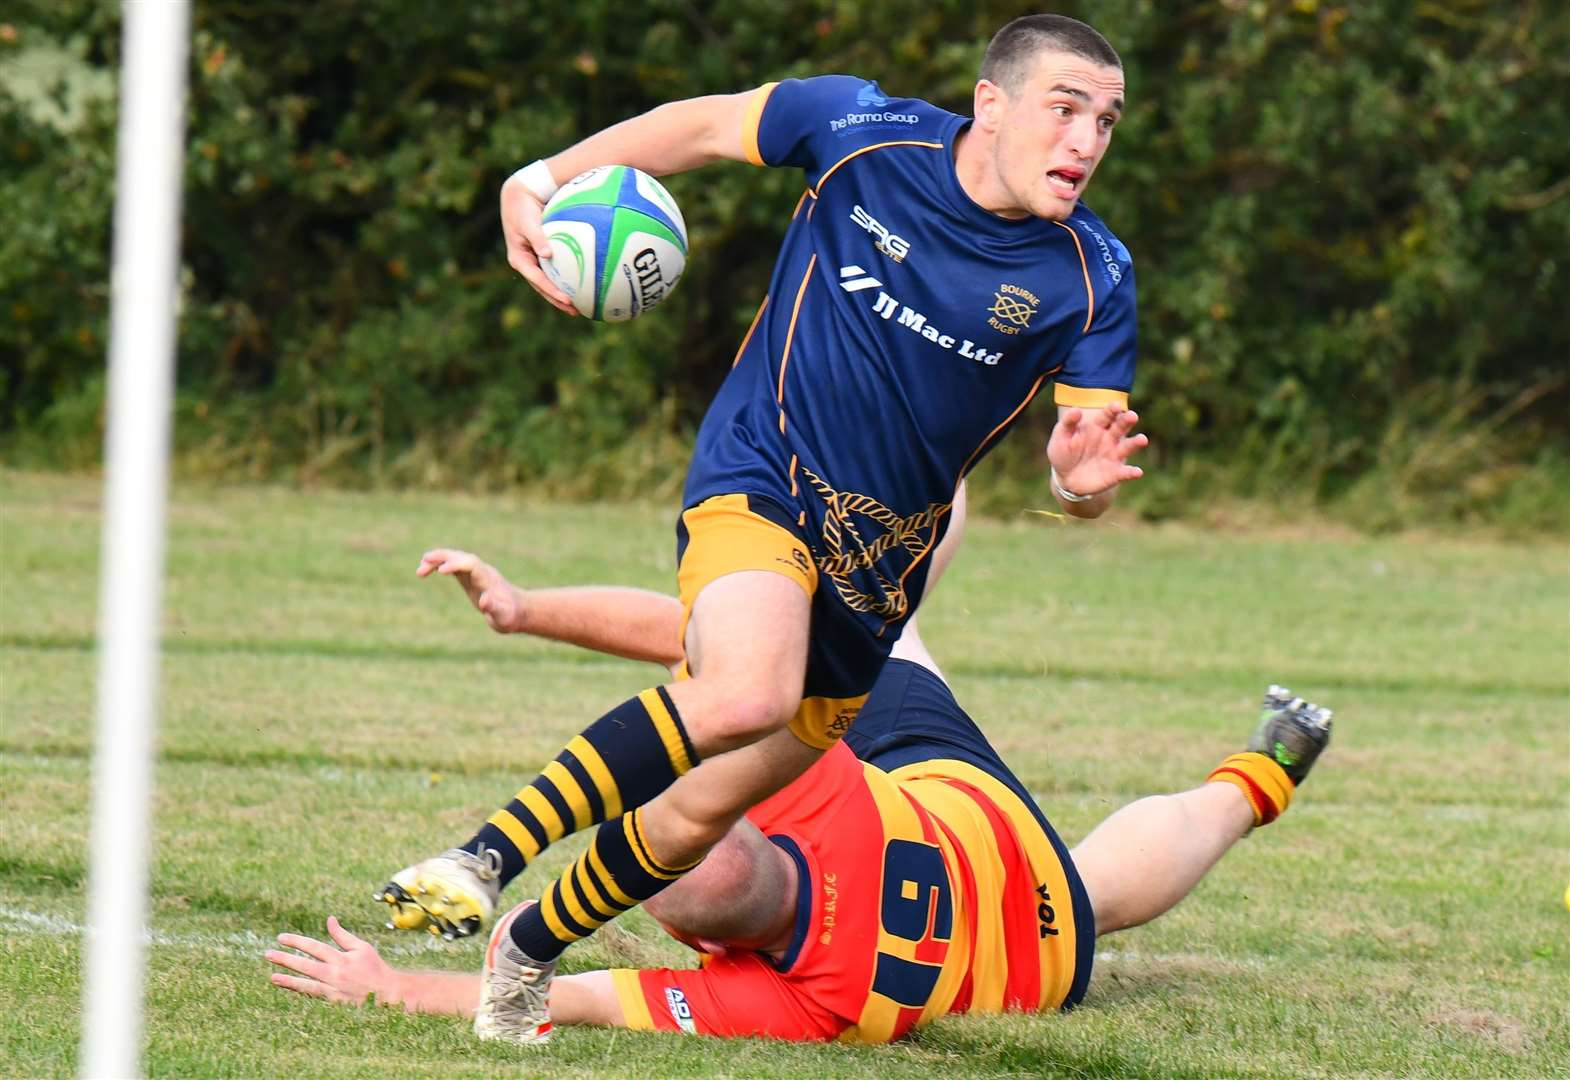 RUGBY UNION: Four tries by Colangelo to set up big win